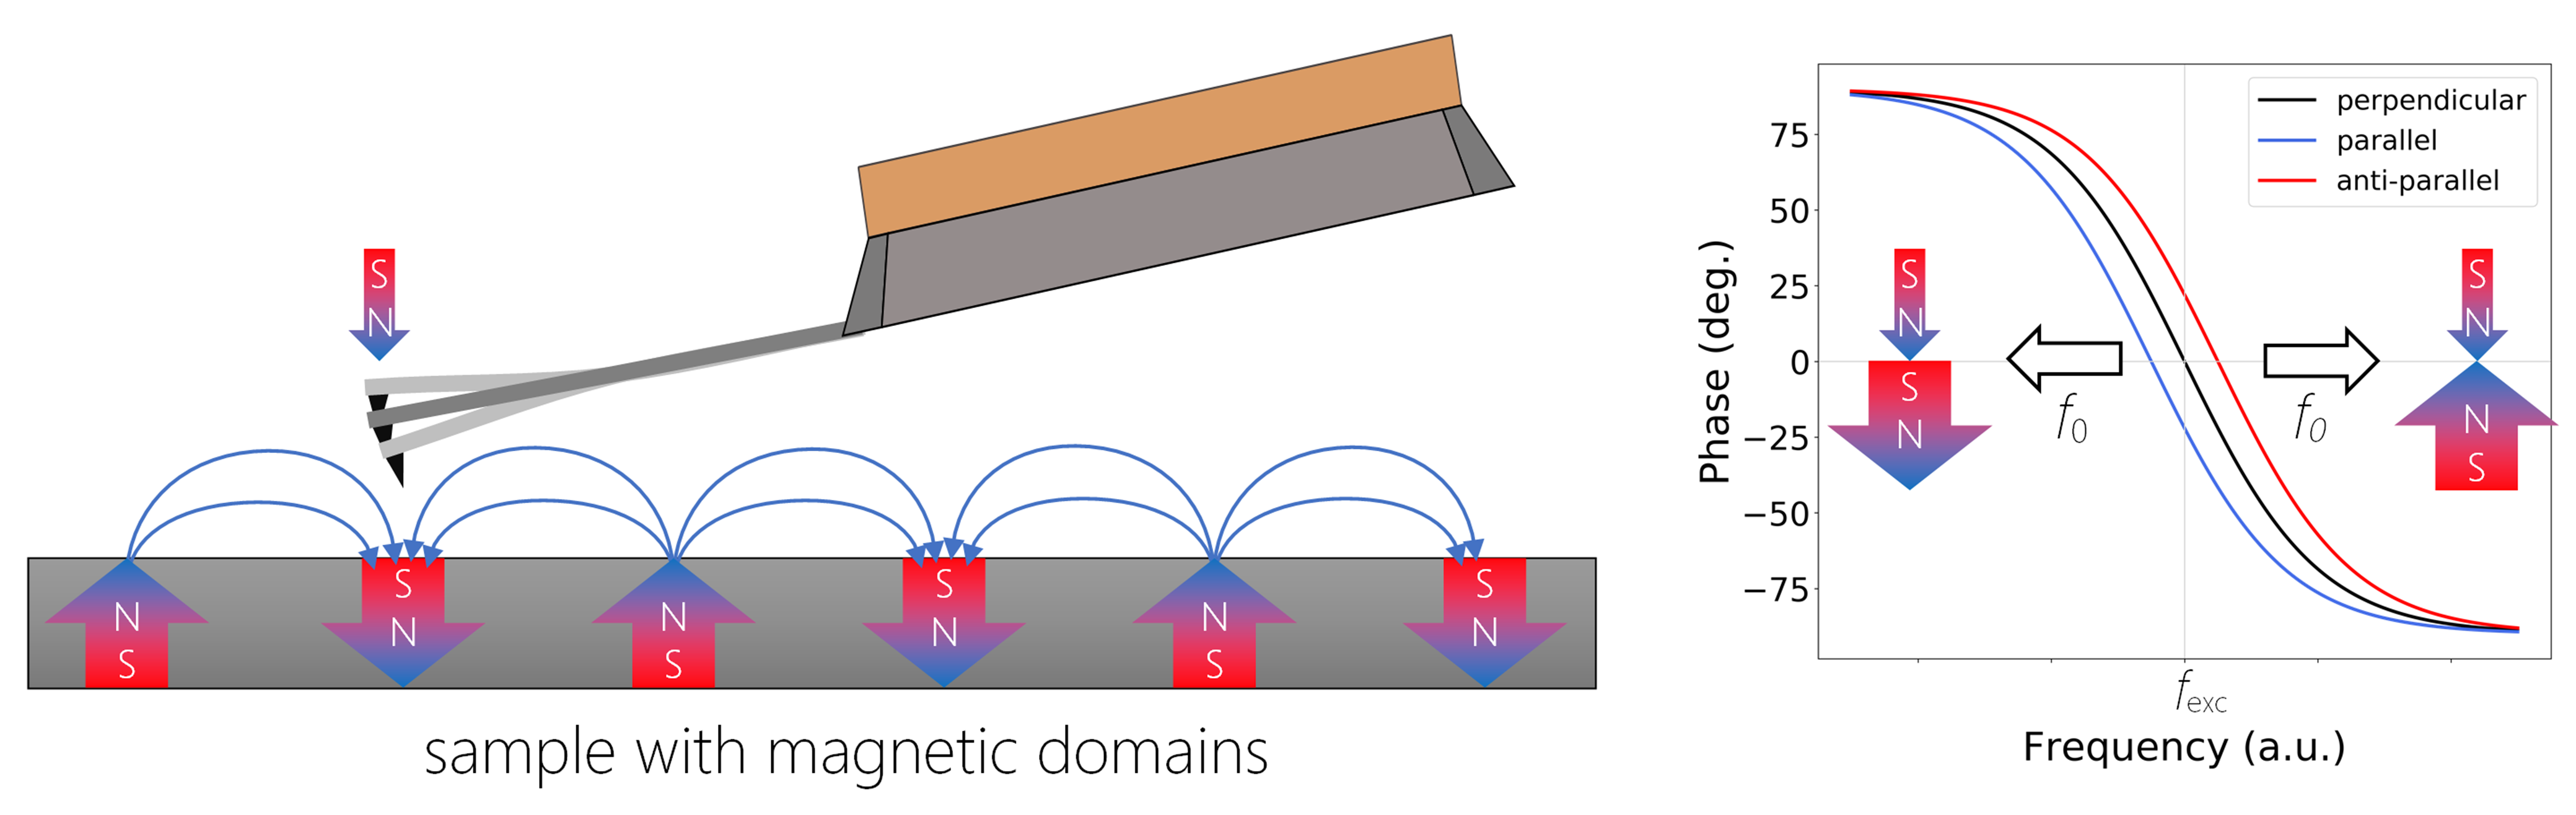 Figure 1. A schematic representation of MFM. If the local magnetic moments are parallel, i.e. magnetic field in the sample is aligned in the direction of the tip magnetization, there is an attractive force causing a negative phase shift (blue curve), in the anti-parallel orientation (red curve), the repulsive force causes positive phase shift from the excitation frequency fexc. There is no shift in case when the magnetic fields of tip and sample are perpendicular to each other.